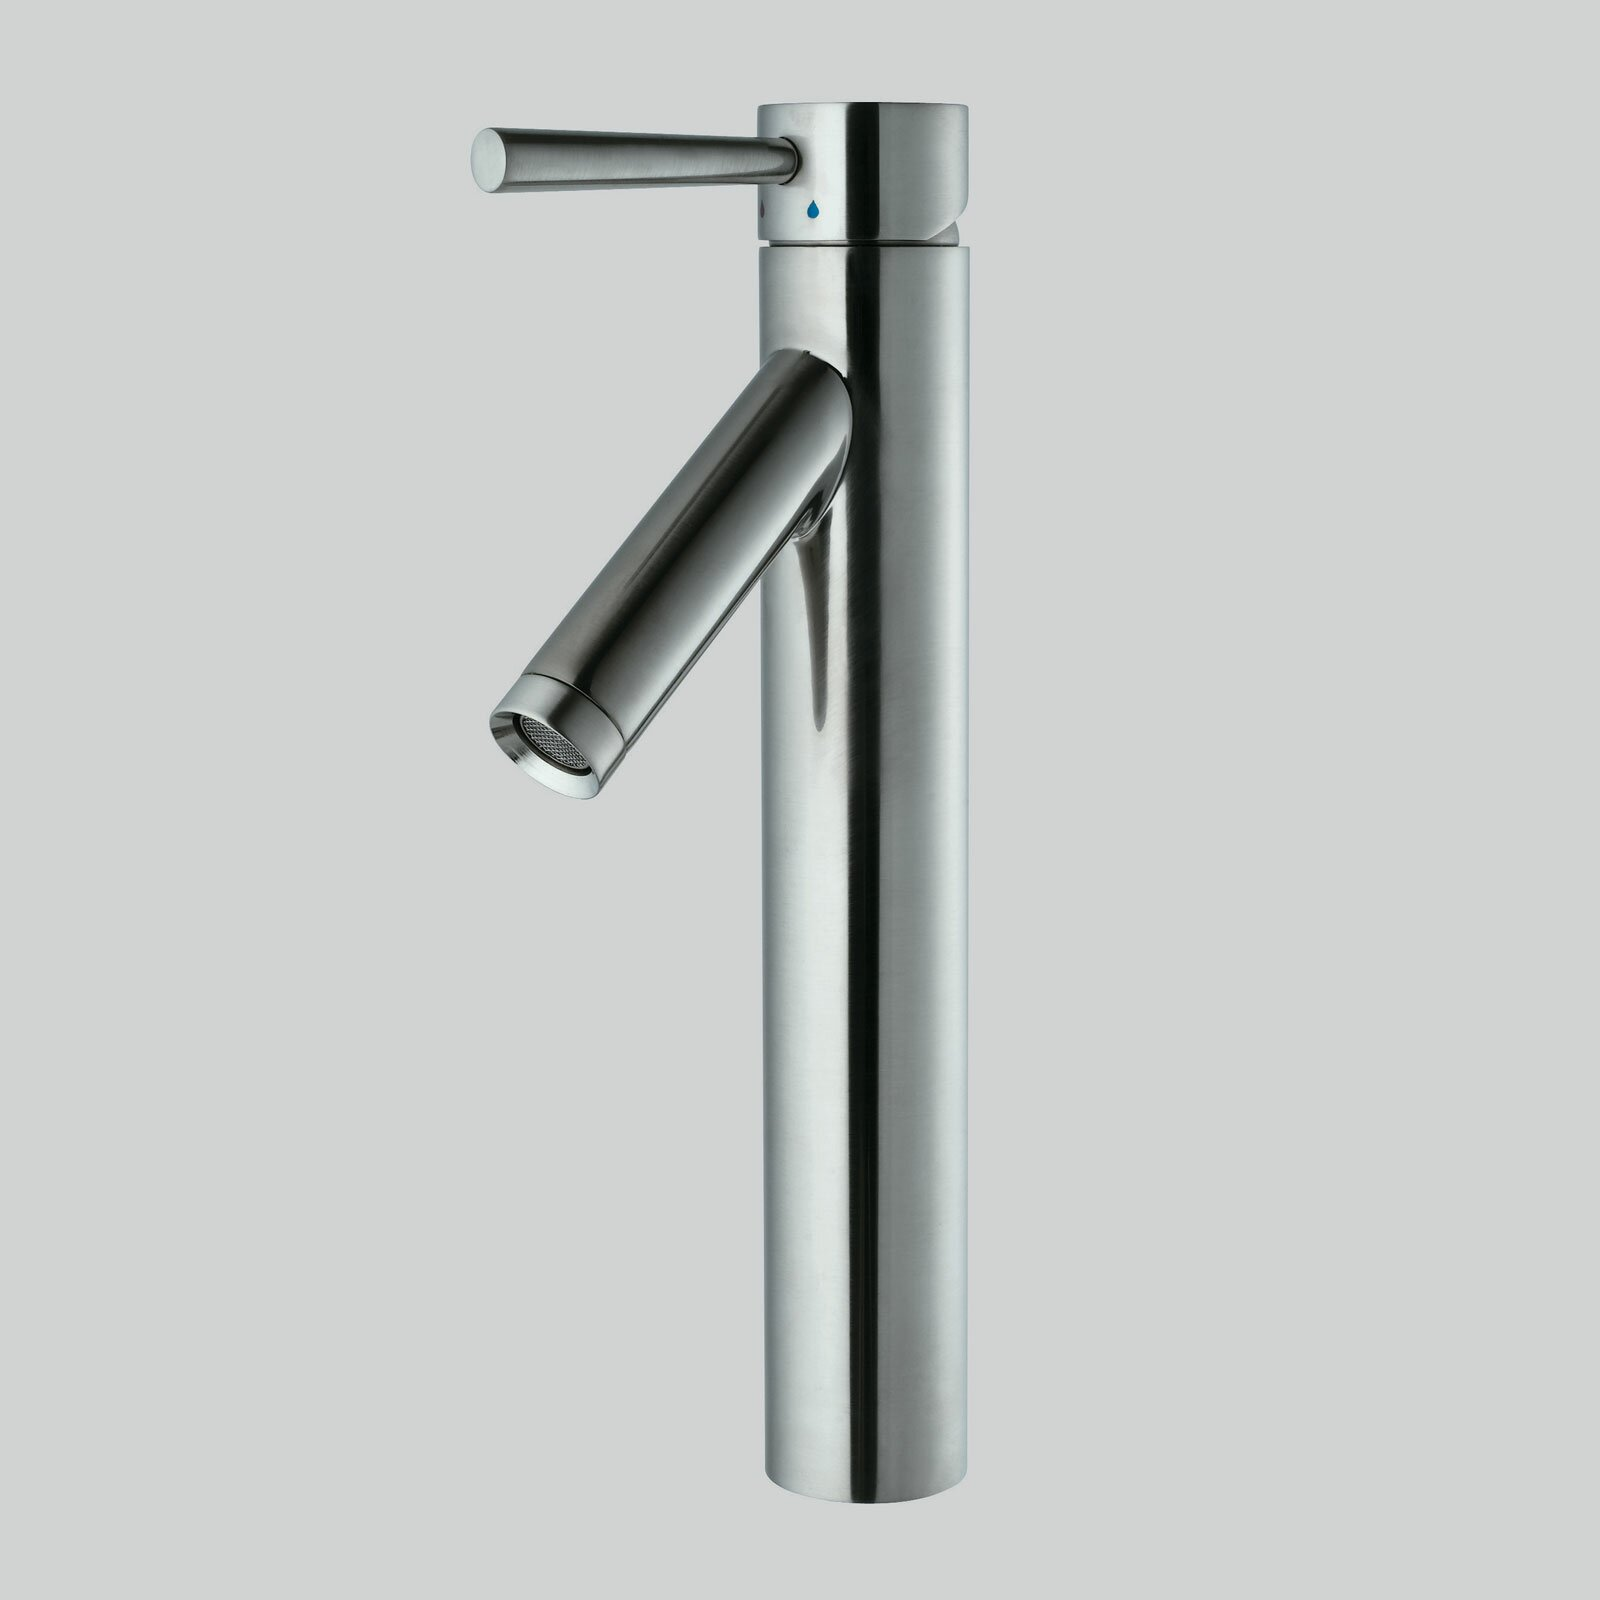 Single Lever Bathroom Faucets: Elite Single Handle Bathroom Faucet & Reviews